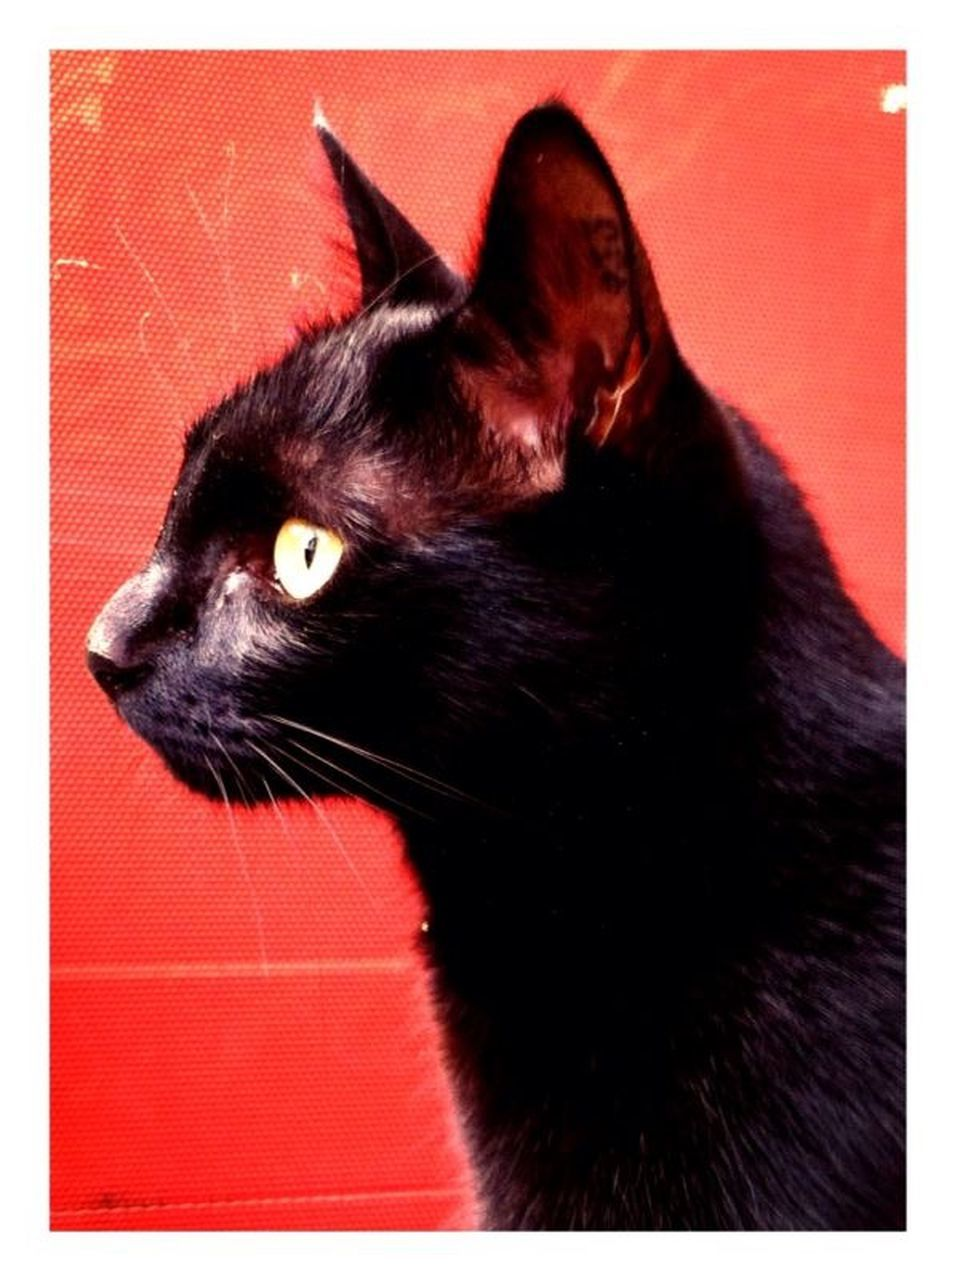 one animal, pets, domestic animals, animal themes, domestic cat, no people, indoors, mammal, red, close-up, portrait, day